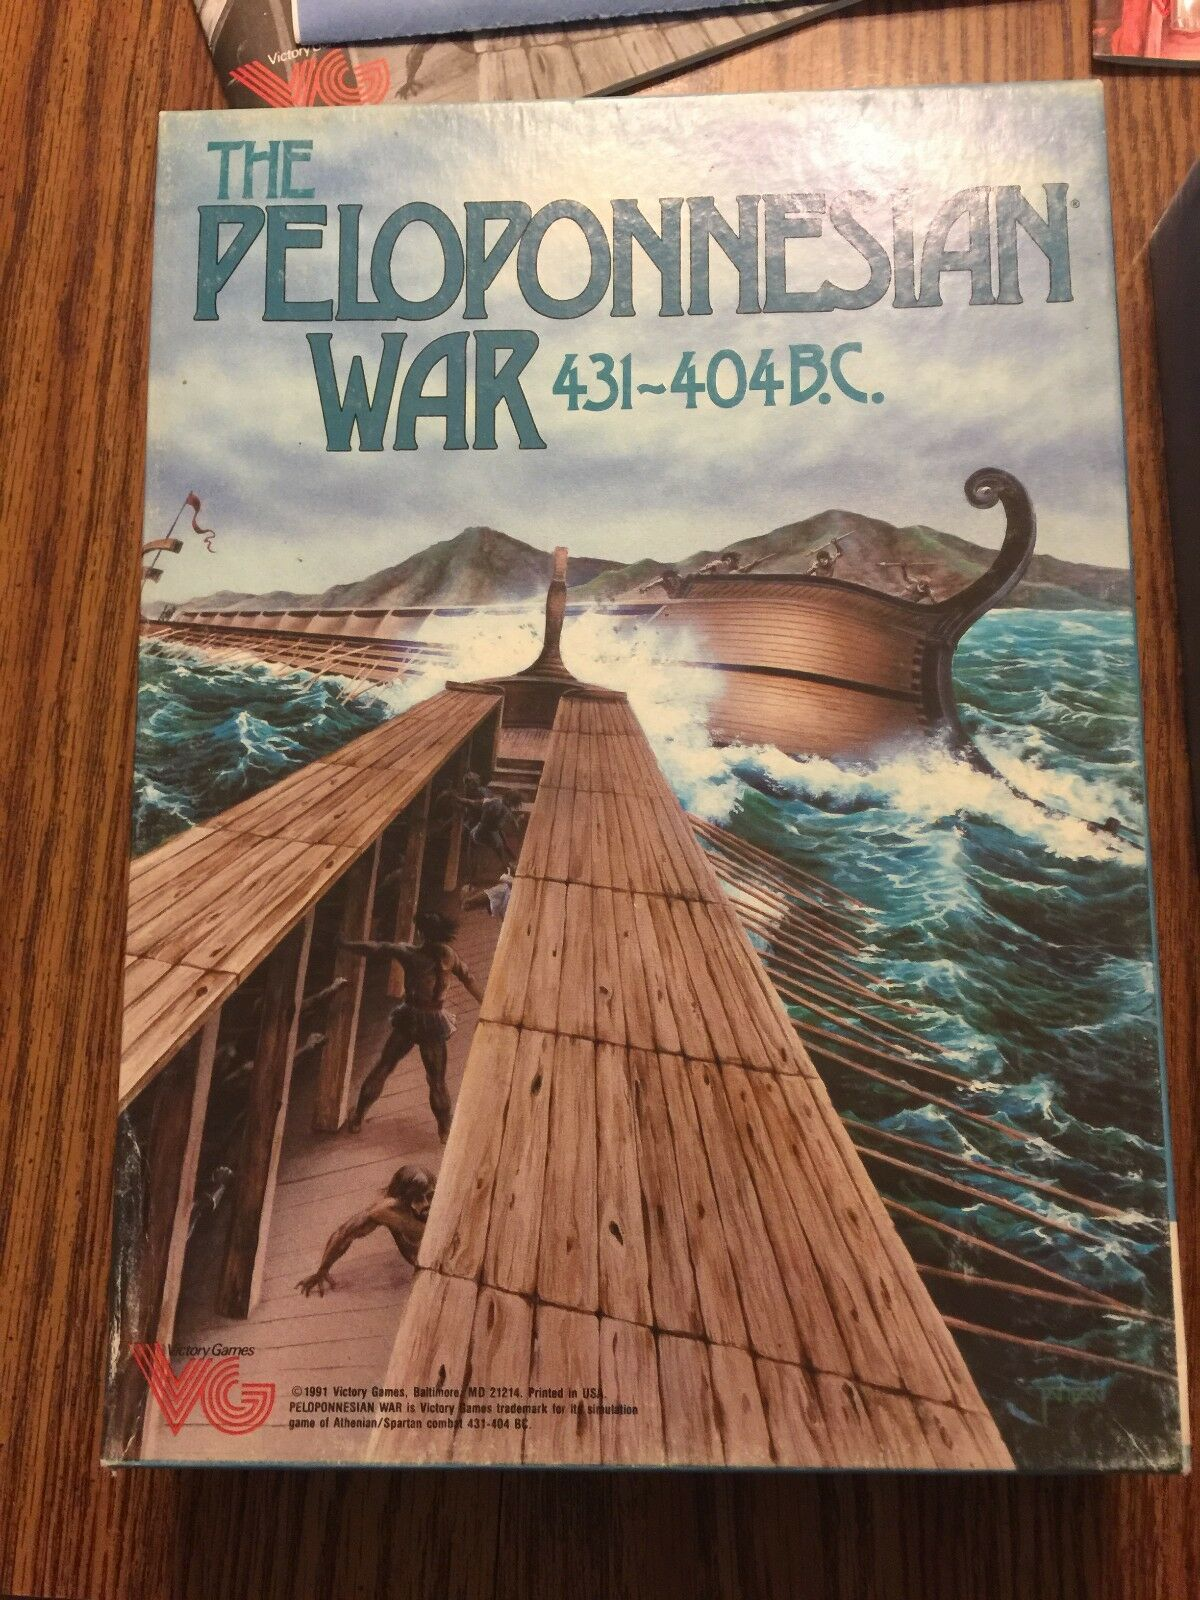 THE PELOPONNESIAN WAR 431-404 B.C. - VICTORY GAMES  Hard to find